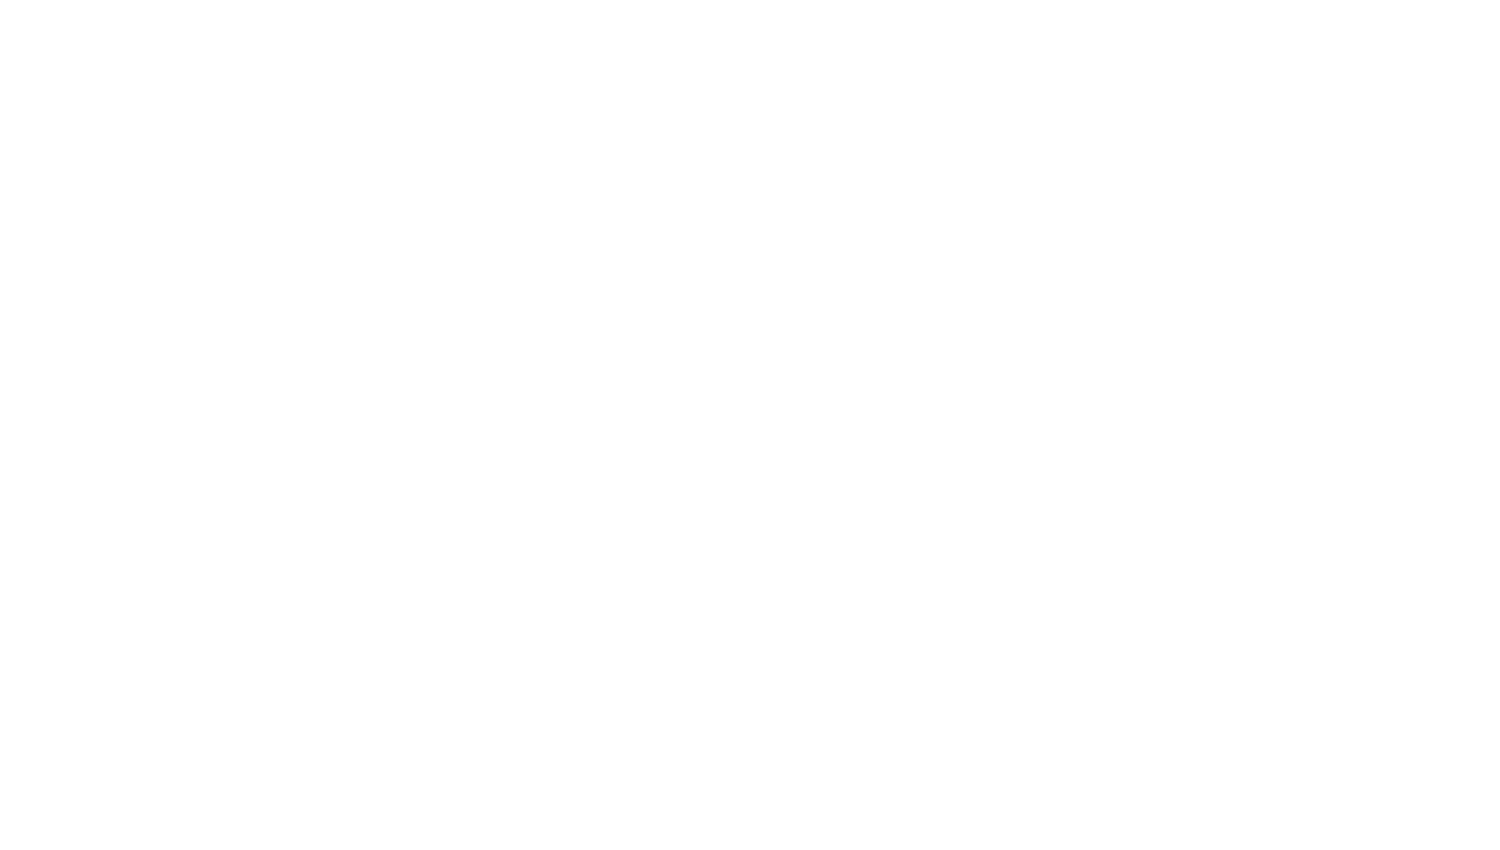 BBA Specializations